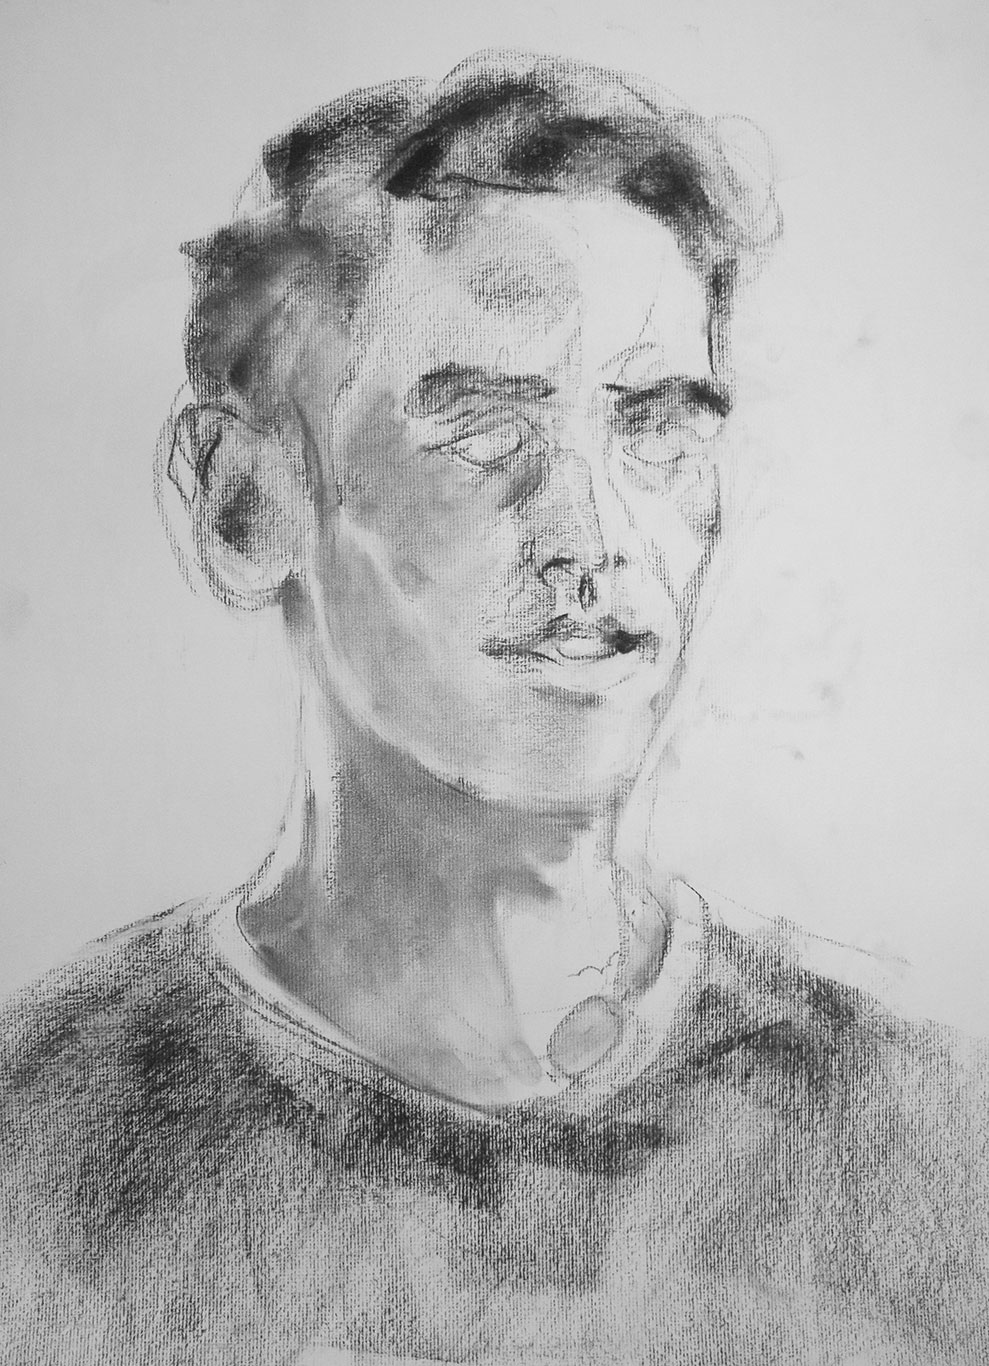 Self-Portrait Drawing, Charcoal, Casey Roonan